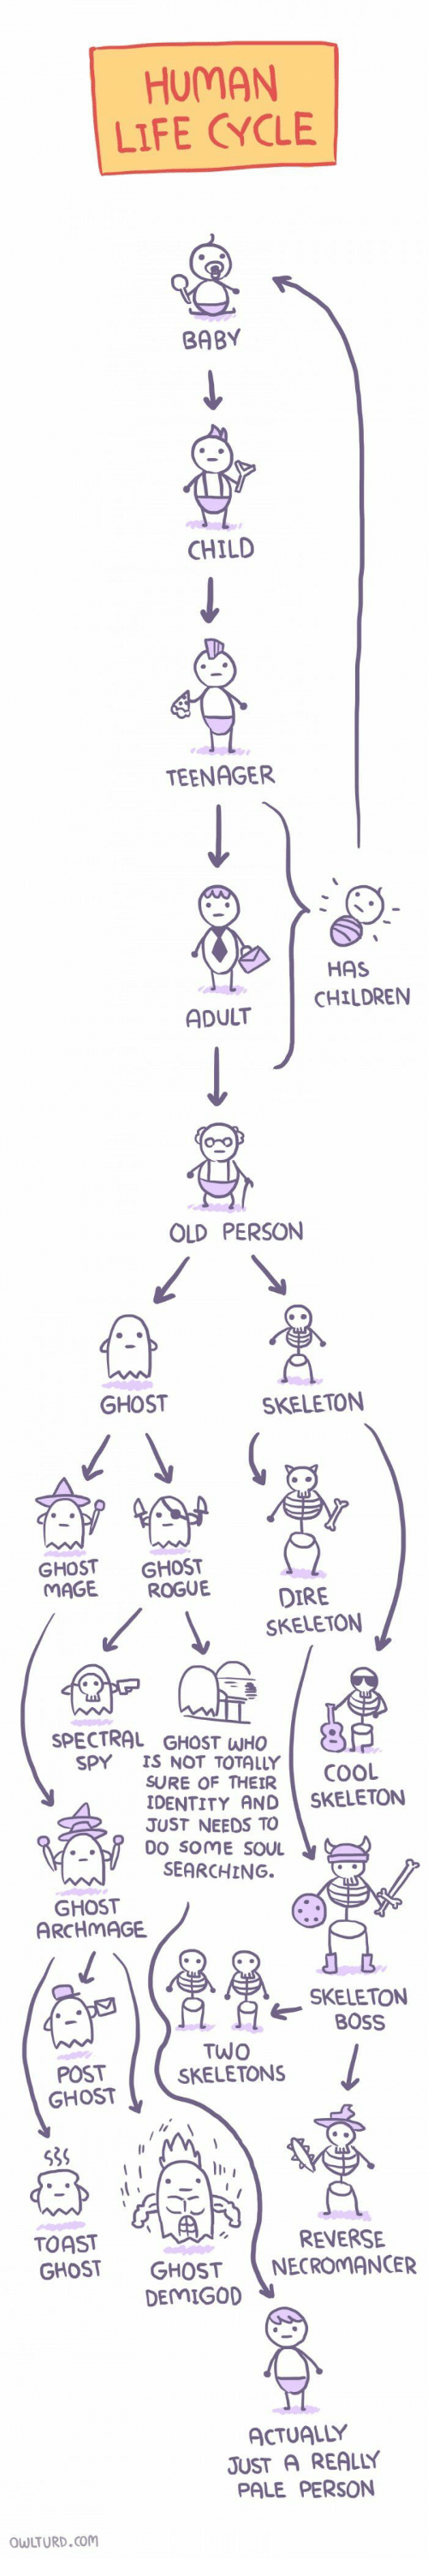 Rogue: HUMAN  LIFE CYCLE  BABY  CHILD  TEENAGER  HAS  CHILDRENN  ADULT  OLD PERSON  GHOST  SKELETON  GHOST GHOST  MAGE ROGUE  DIRE  SKELETON  SPECTRAL GHOST WHO  SPY IS NOT TOTALLY  SURE OF THEIR  COOL  DENTITY AND SKELETON  JUST NEEDS TO  DO SOME SOU  SEARCHING.  GHOST  ARCHMAGE  SKELETON  OSS  POST  GHOST  TWO  SKELETONS  la  539  TOAST  GHOST GHOSTNECROMANCER  REVERSE  DEMIGO  ACTUALLY  JUST A REALLY  PALE PERSON  WLTURD.com